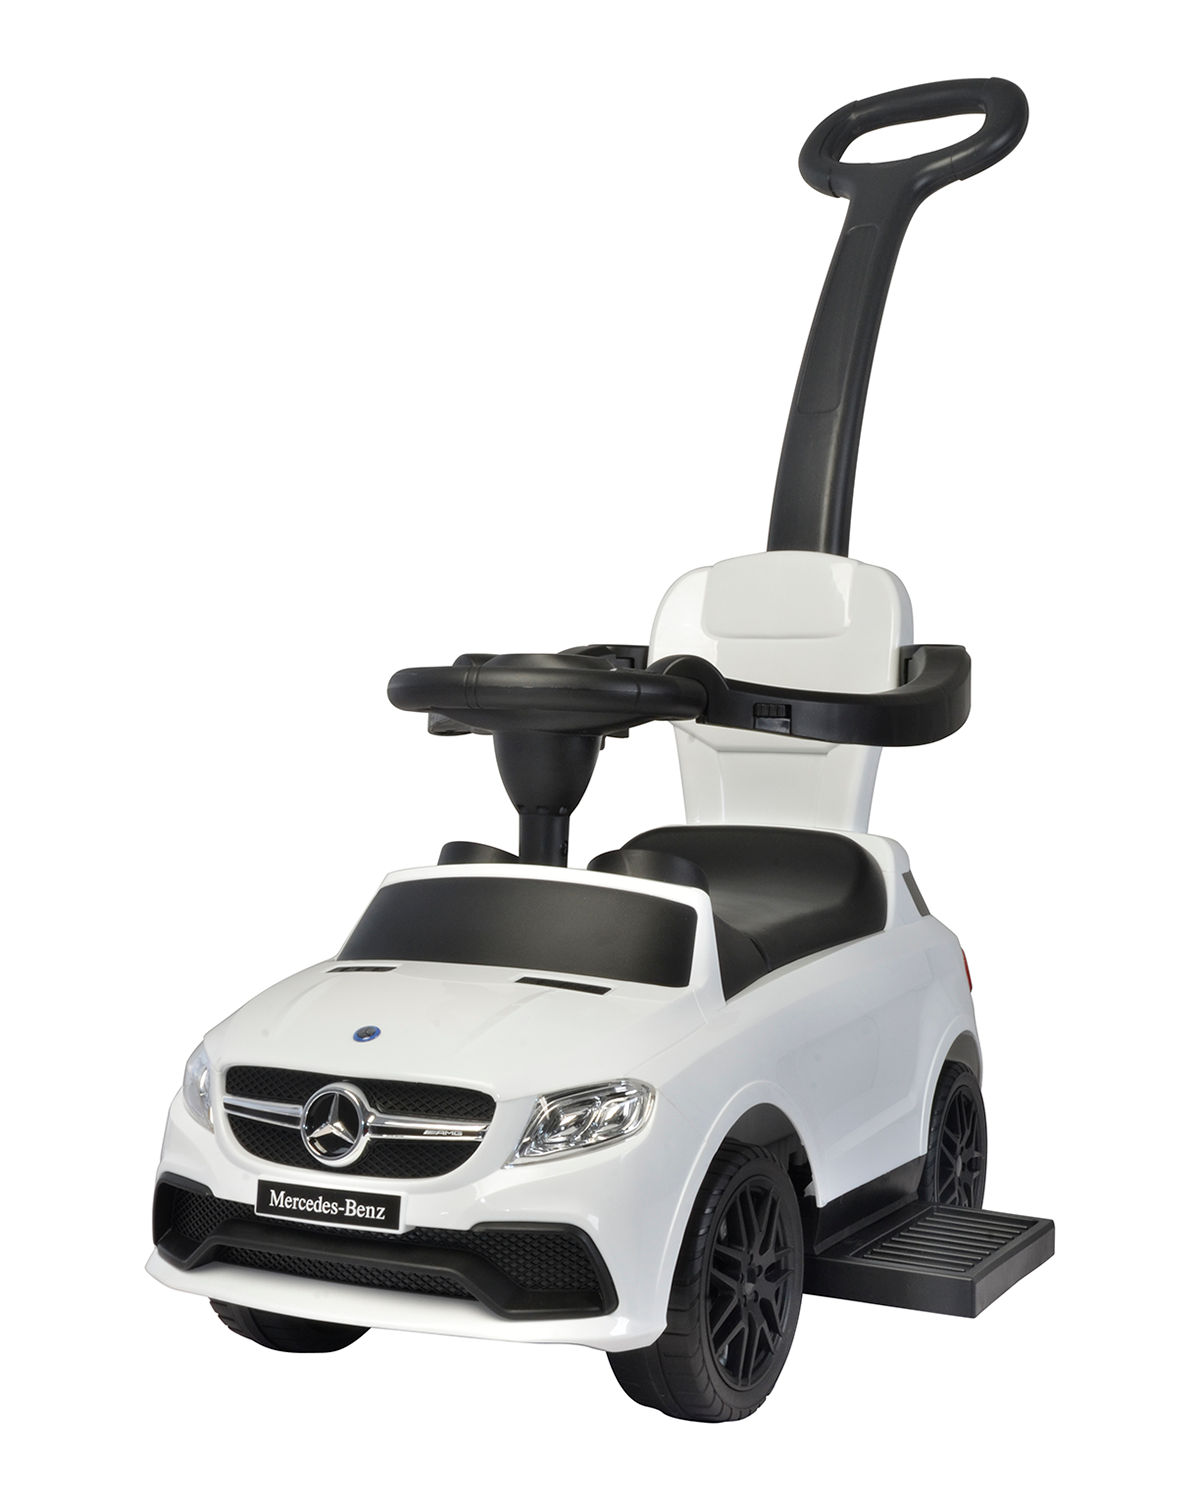 Mercedes 3in1 Push Car Toy